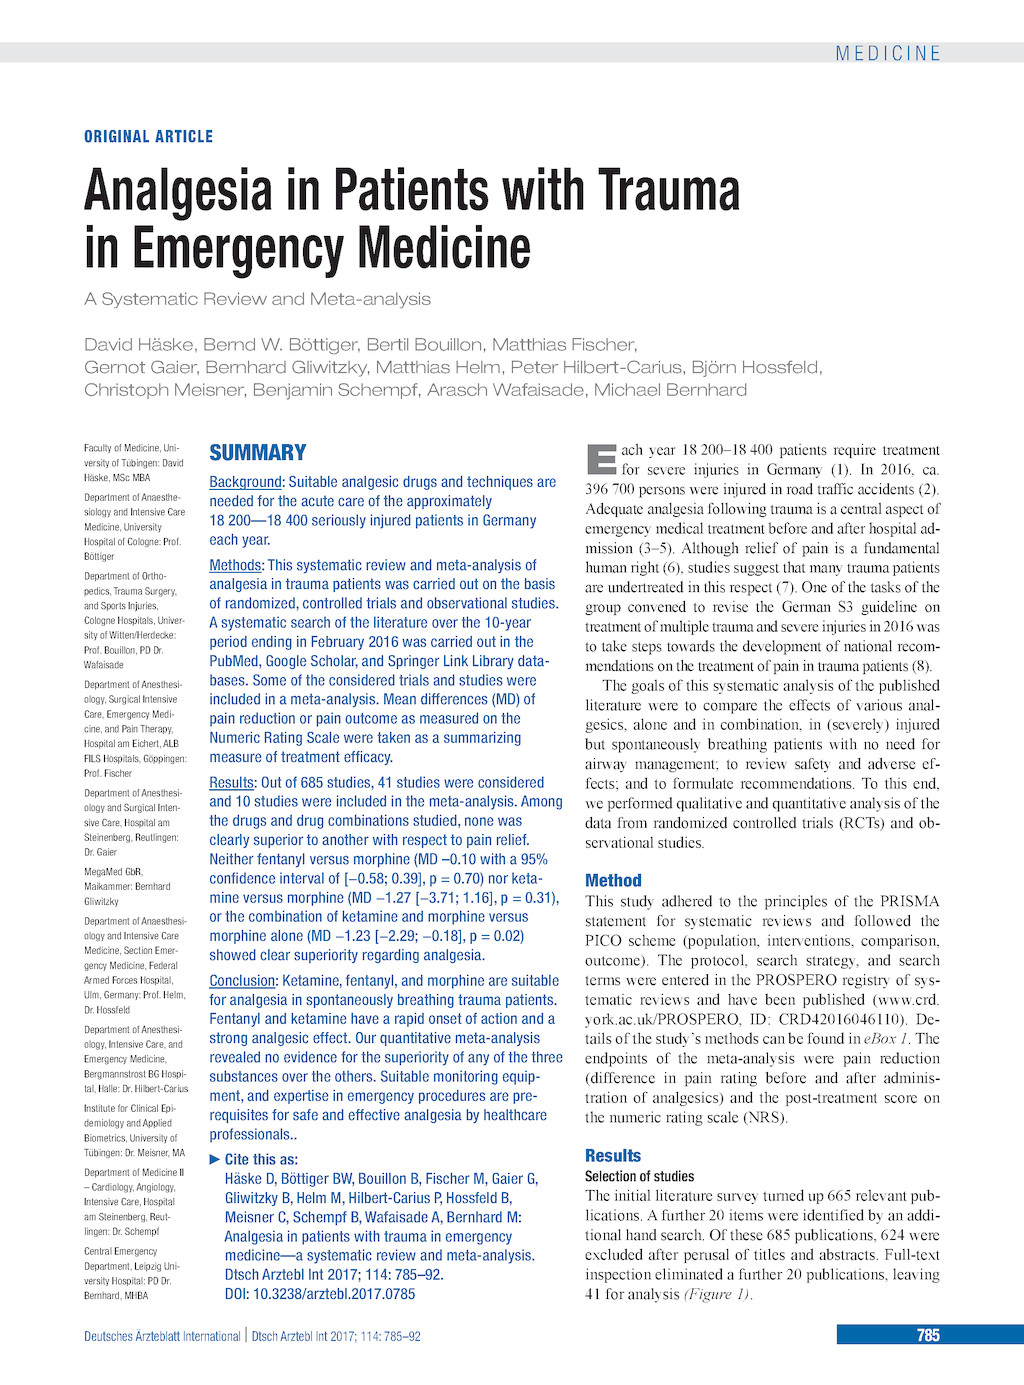 Analgesia in Patients with Trauma in Emergency Medicine (17 11 2017)